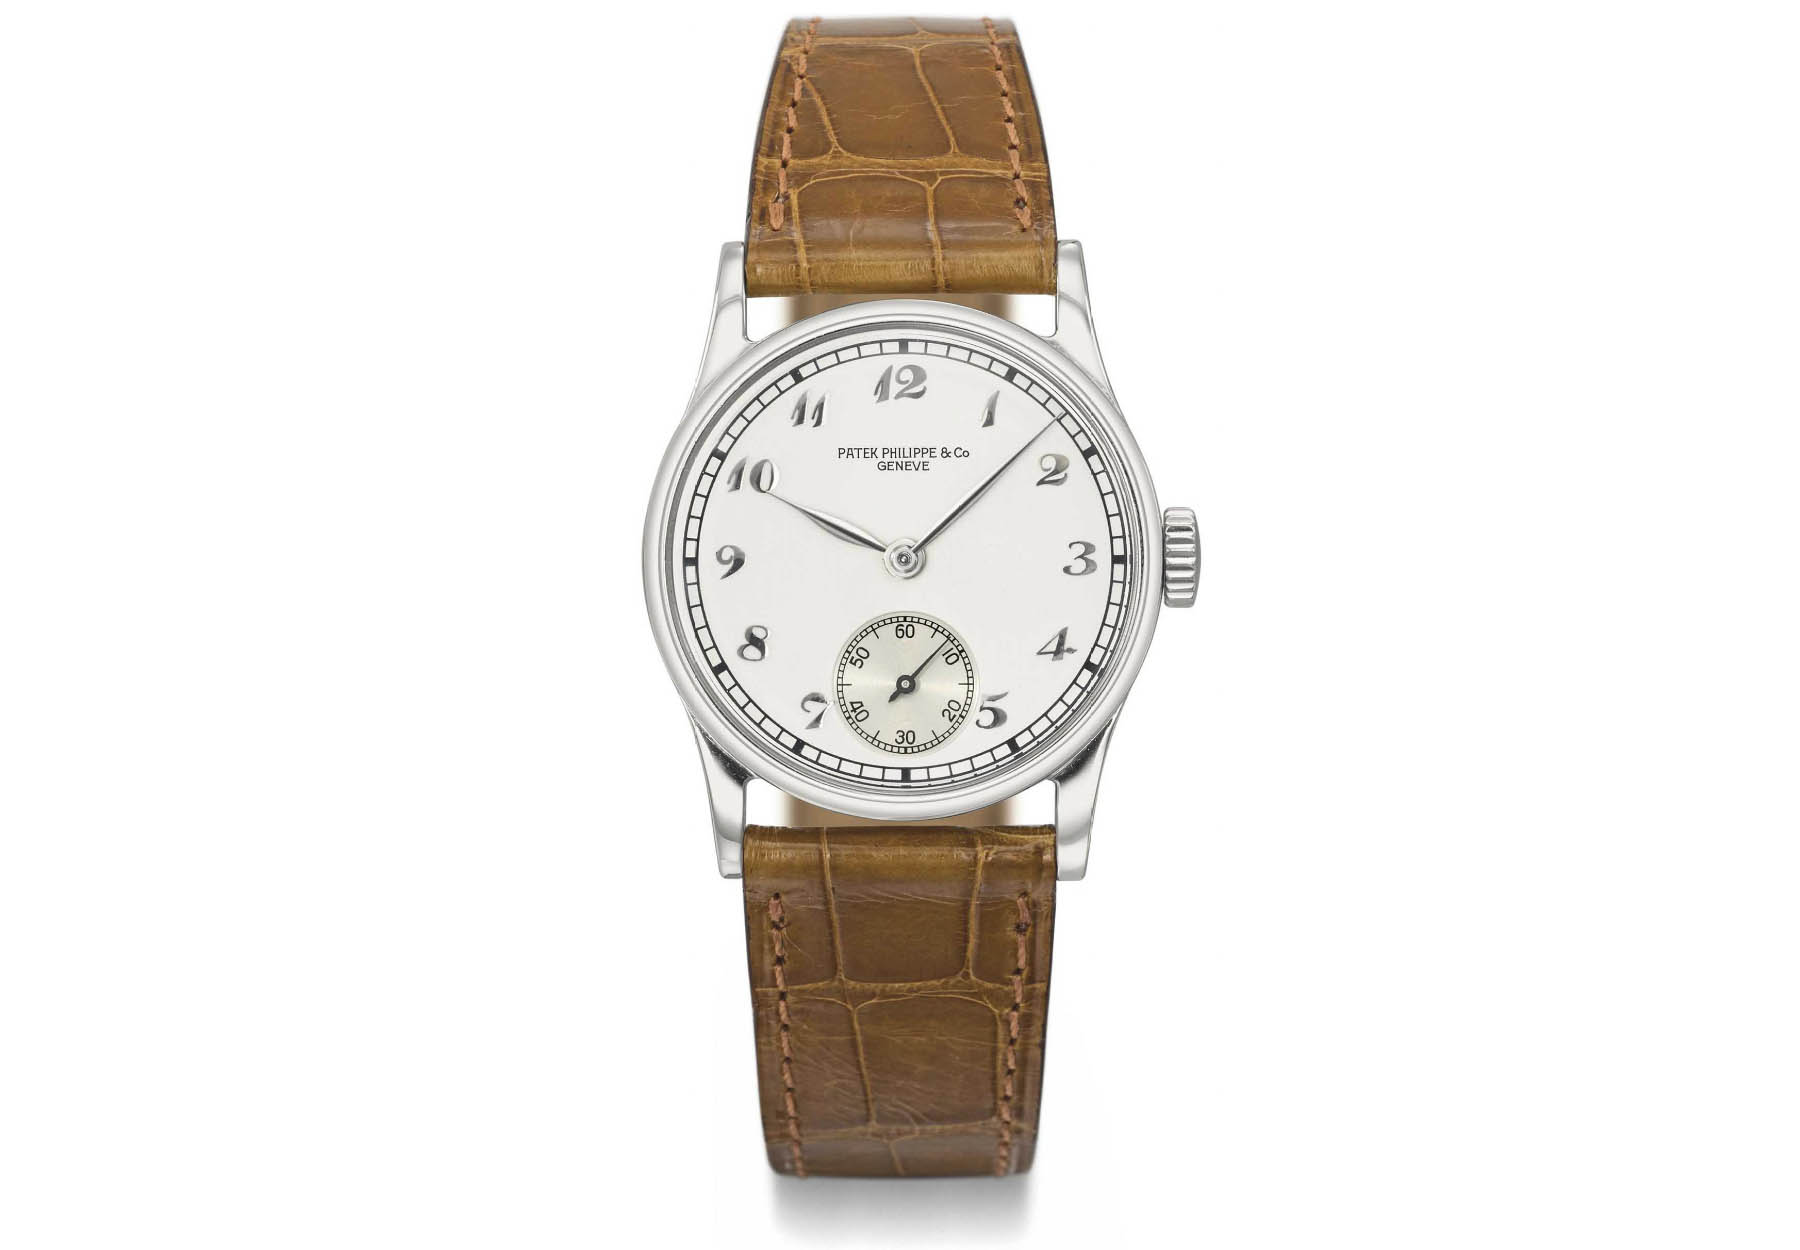 Patek Philippe Calatrava history - Reference 96 breguet numerals - source christies